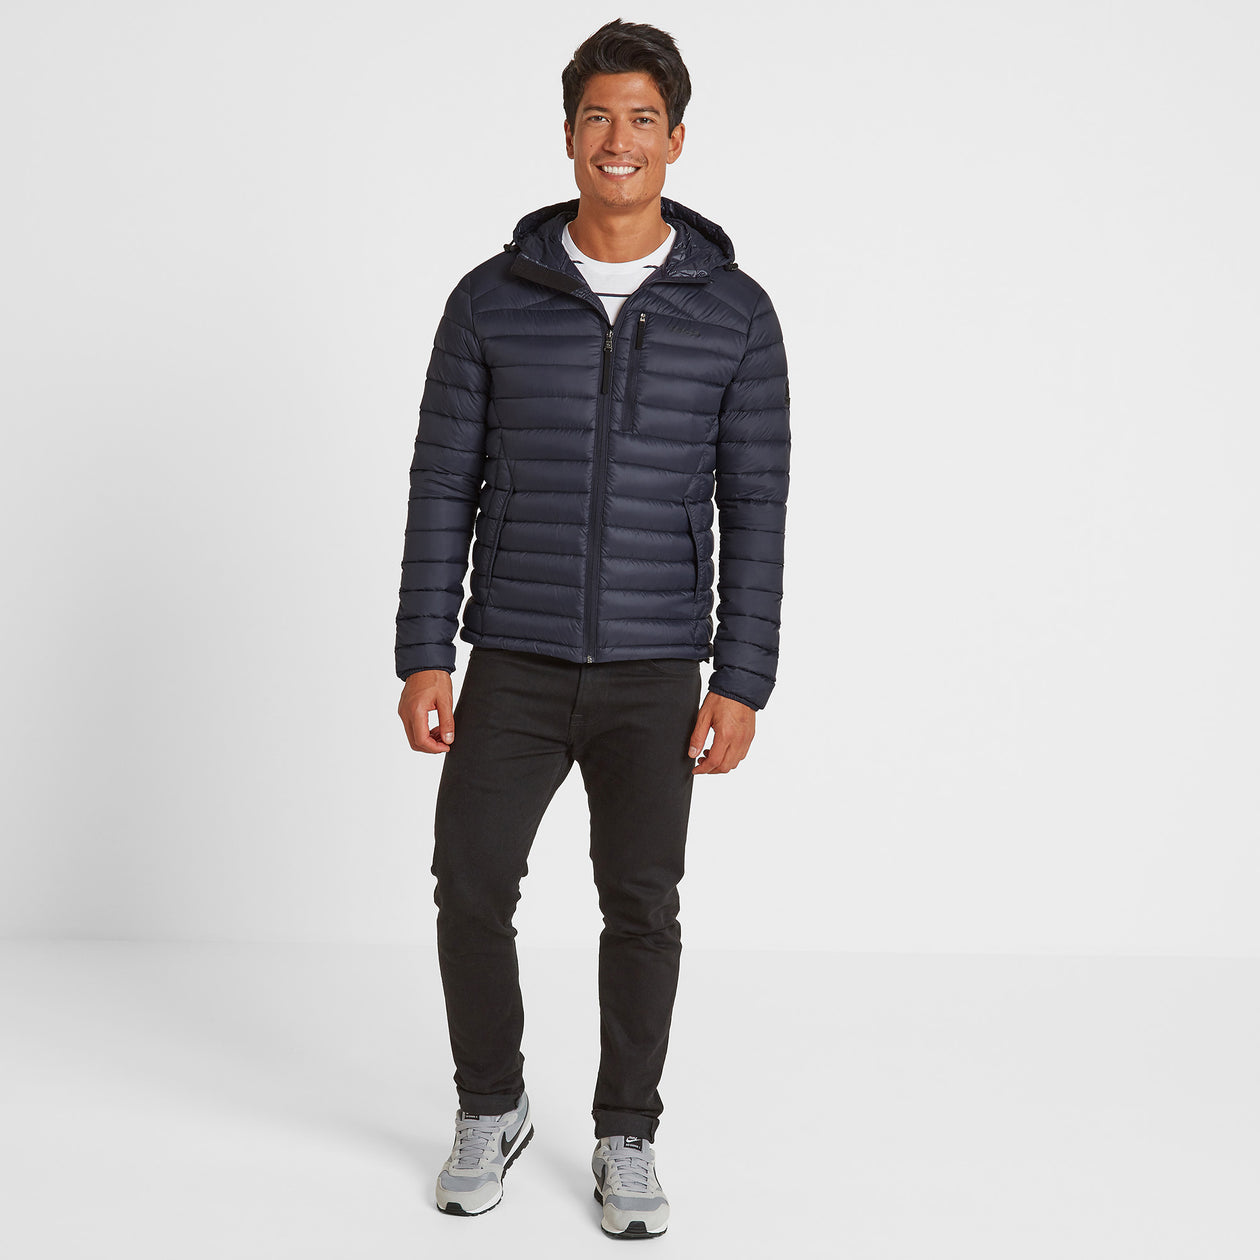 Drax Mens Hooded Down Jacket - Navy image 4